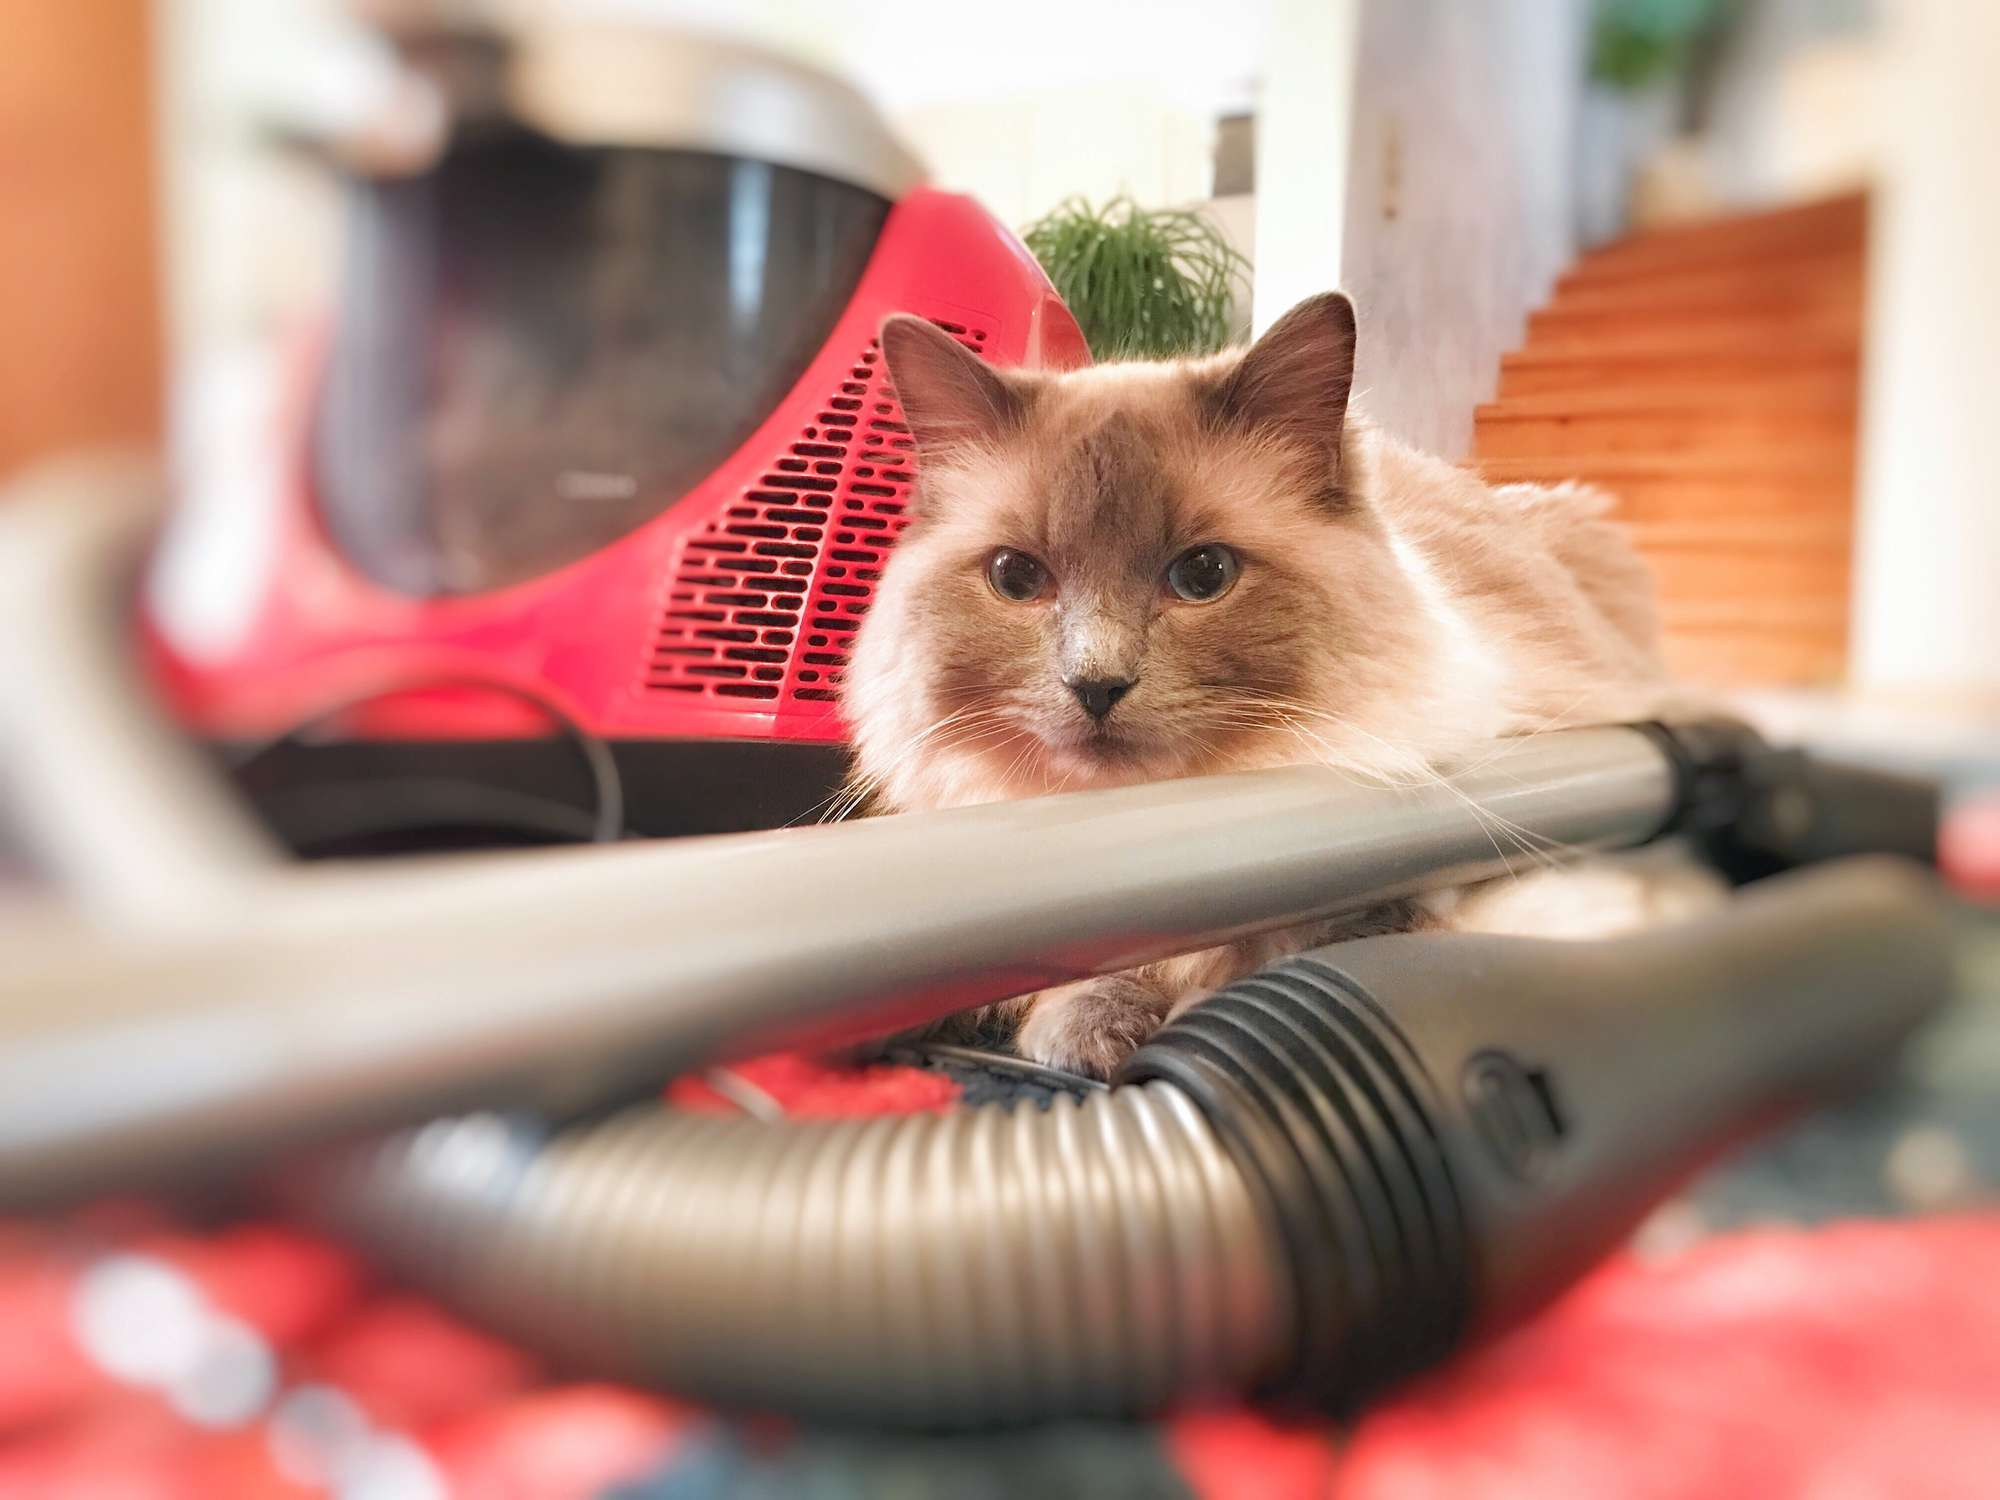 Vacuum with a cat nearby.